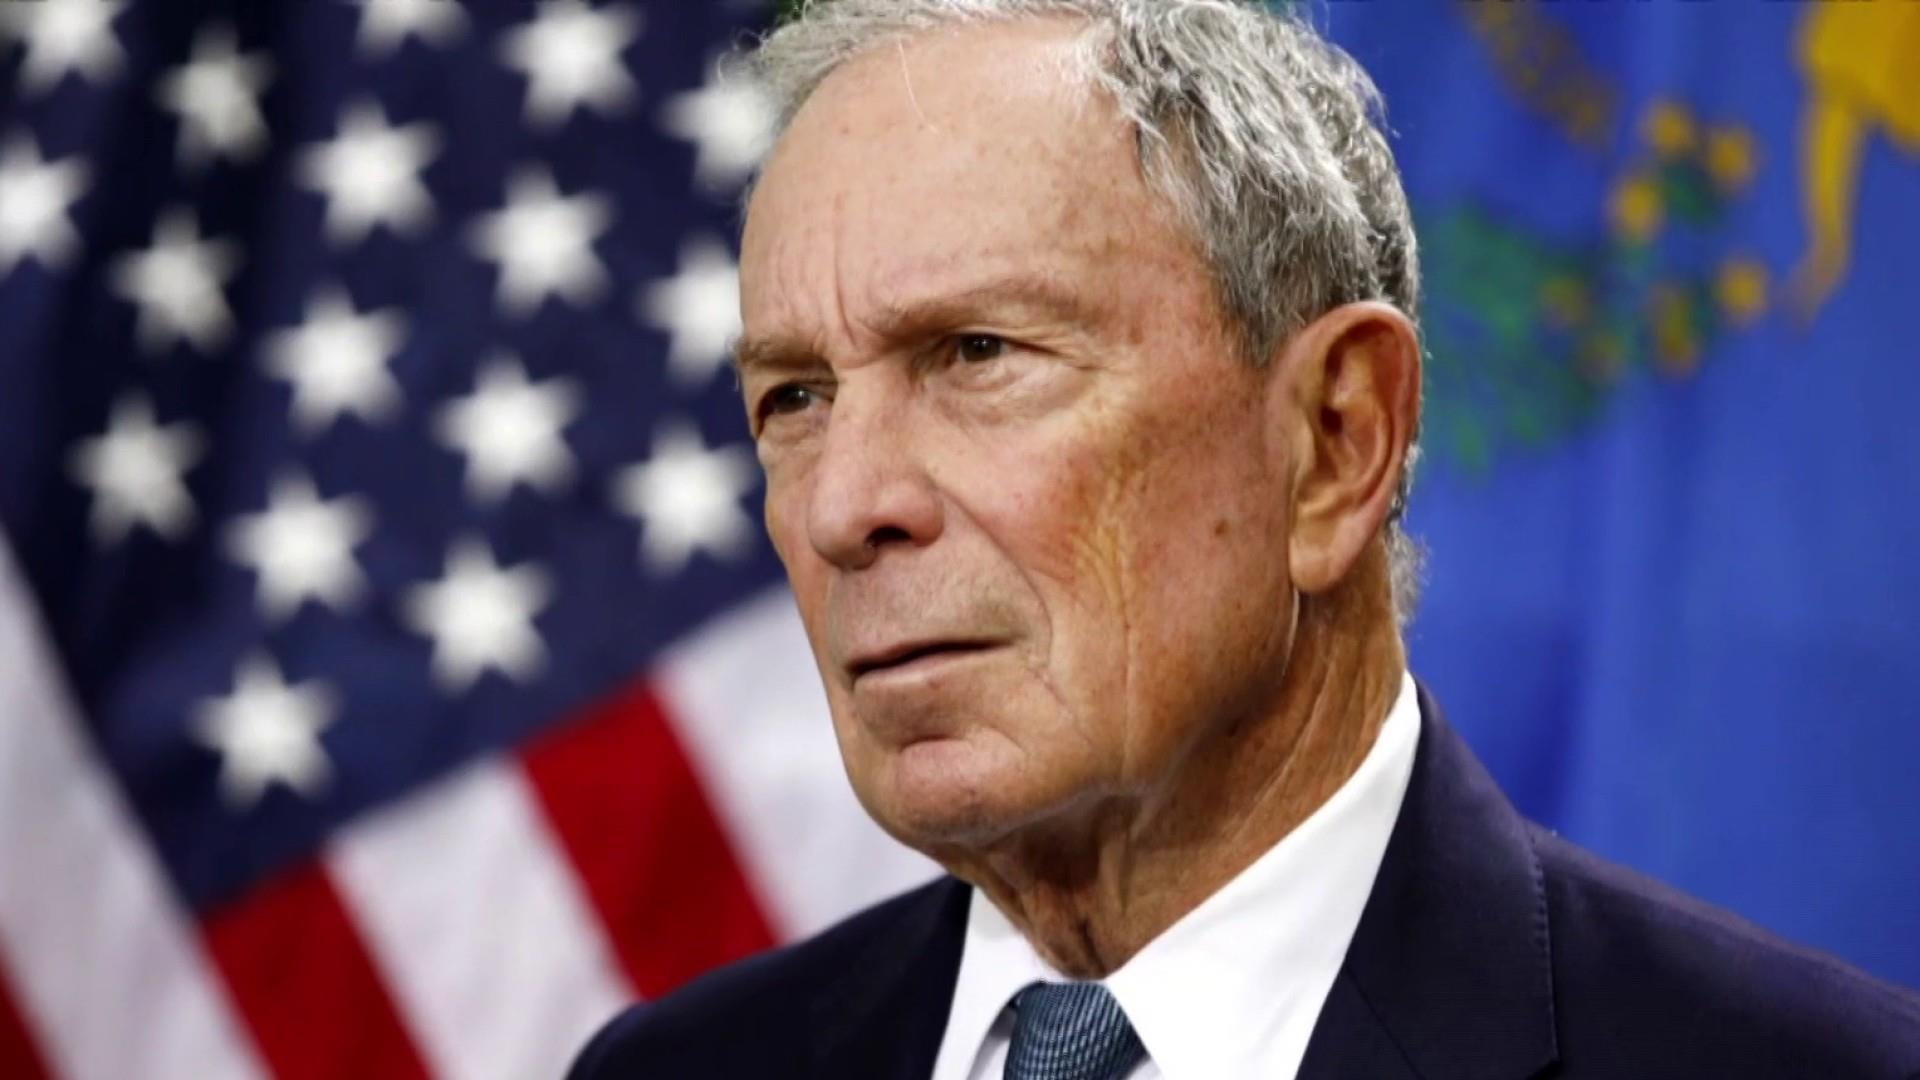 Michael Bloomberg not running for president in 2020